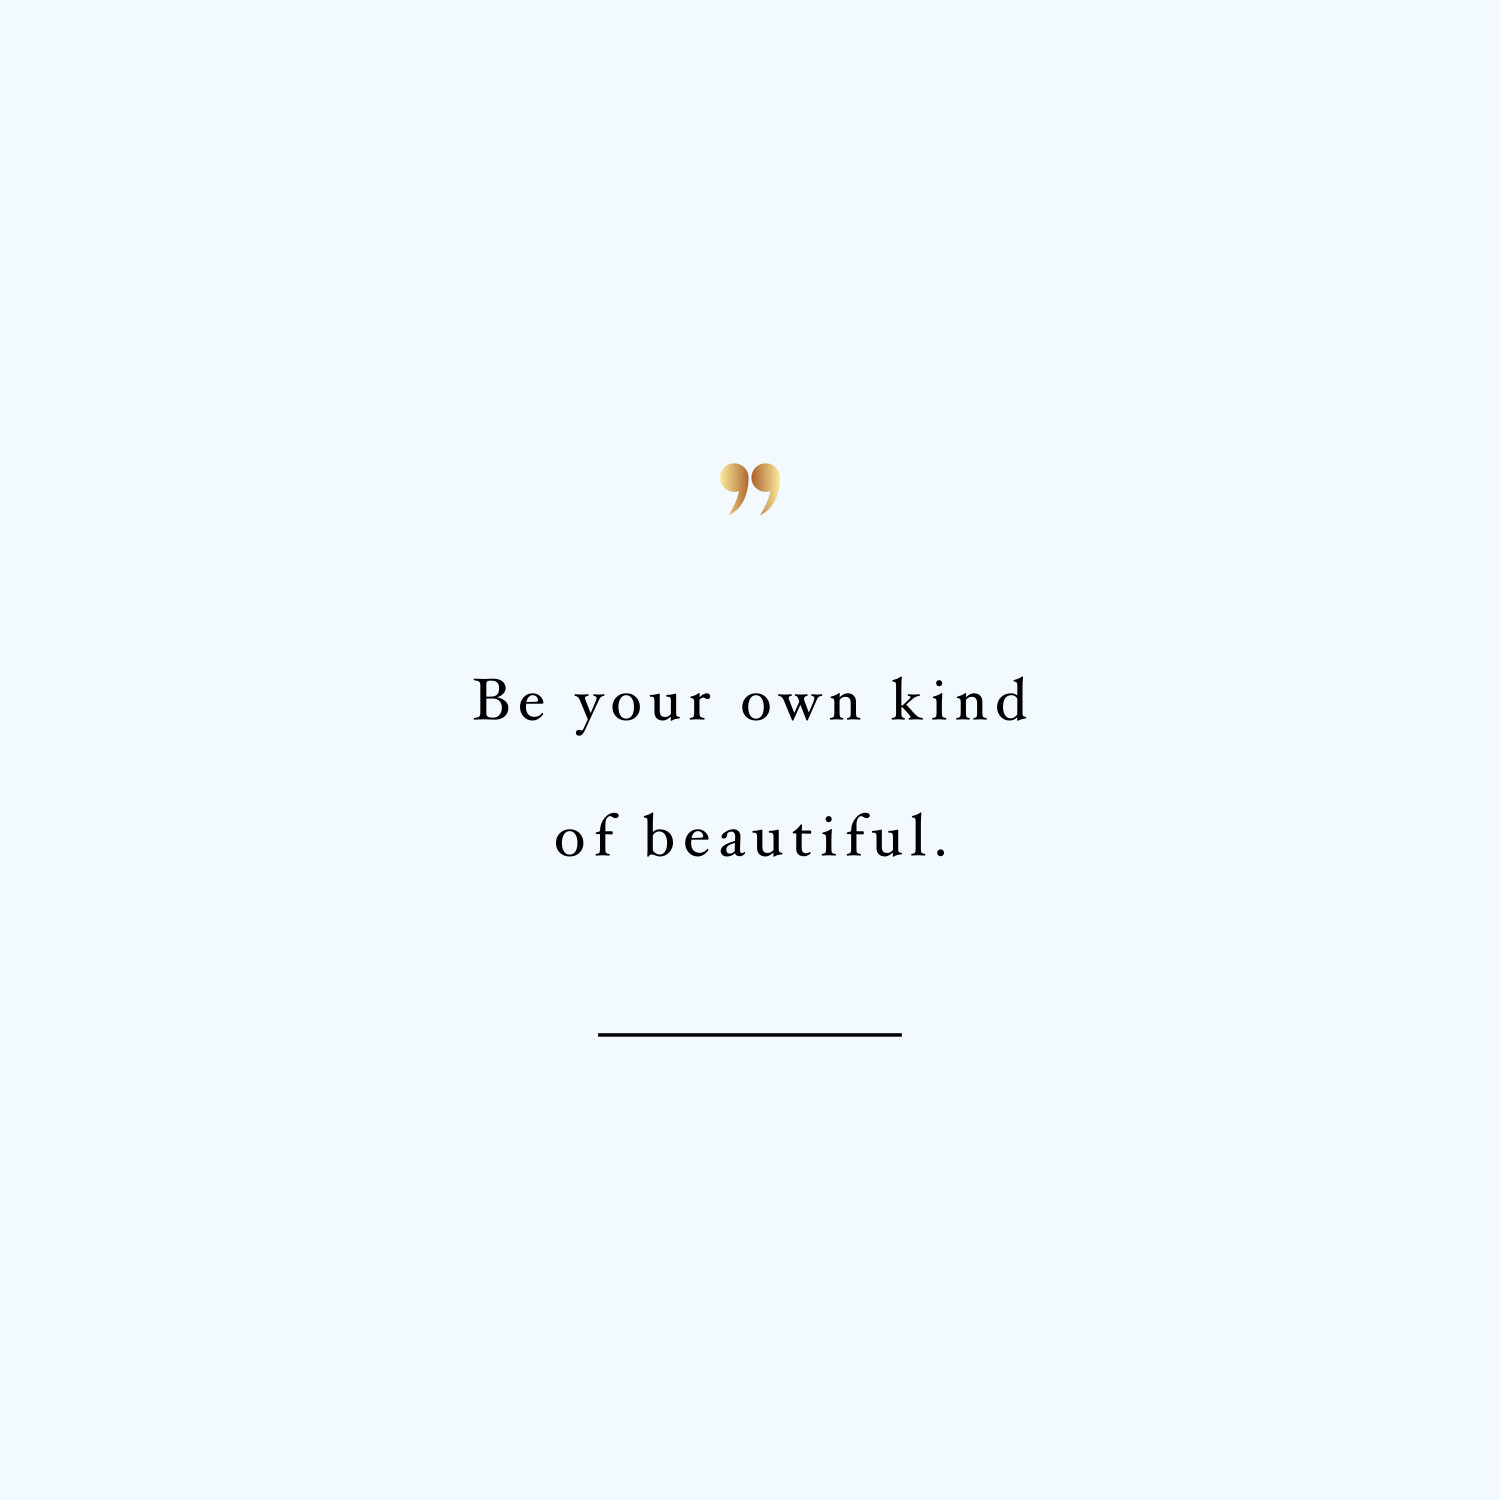 Be your own kind of beautiful! Browse our collection of inspirational wellness and fitness quotes and get instant training and weight loss motivation. Transform positive thoughts into positive actions and get fit, healthy and happy! https://www.spotebi.com/workout-motivation/be-your-own-kind-of-beautiful/